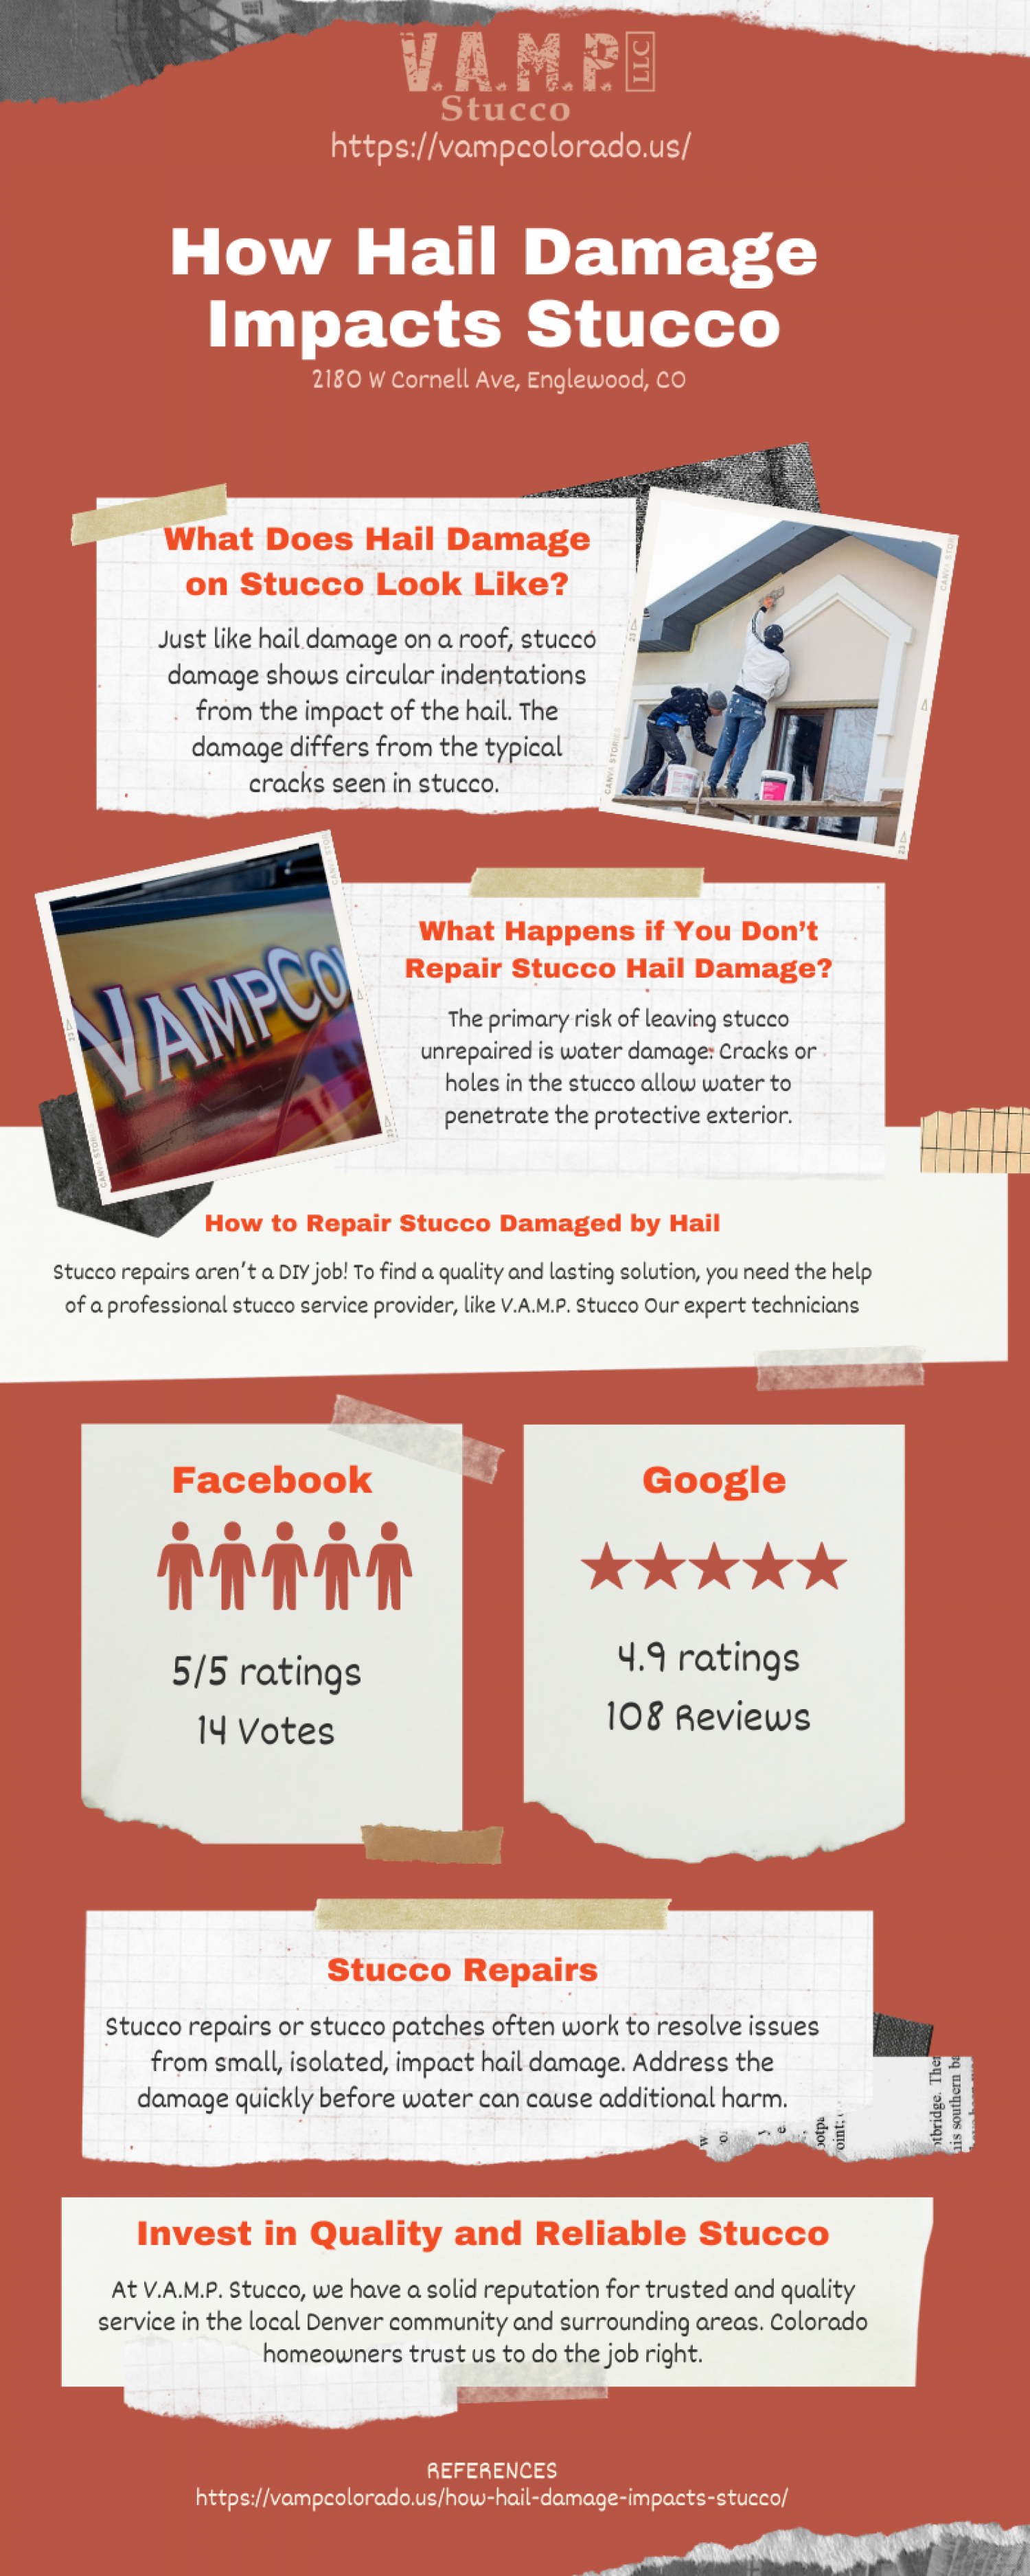 How Hail Damage Impacts Stucco Infographic